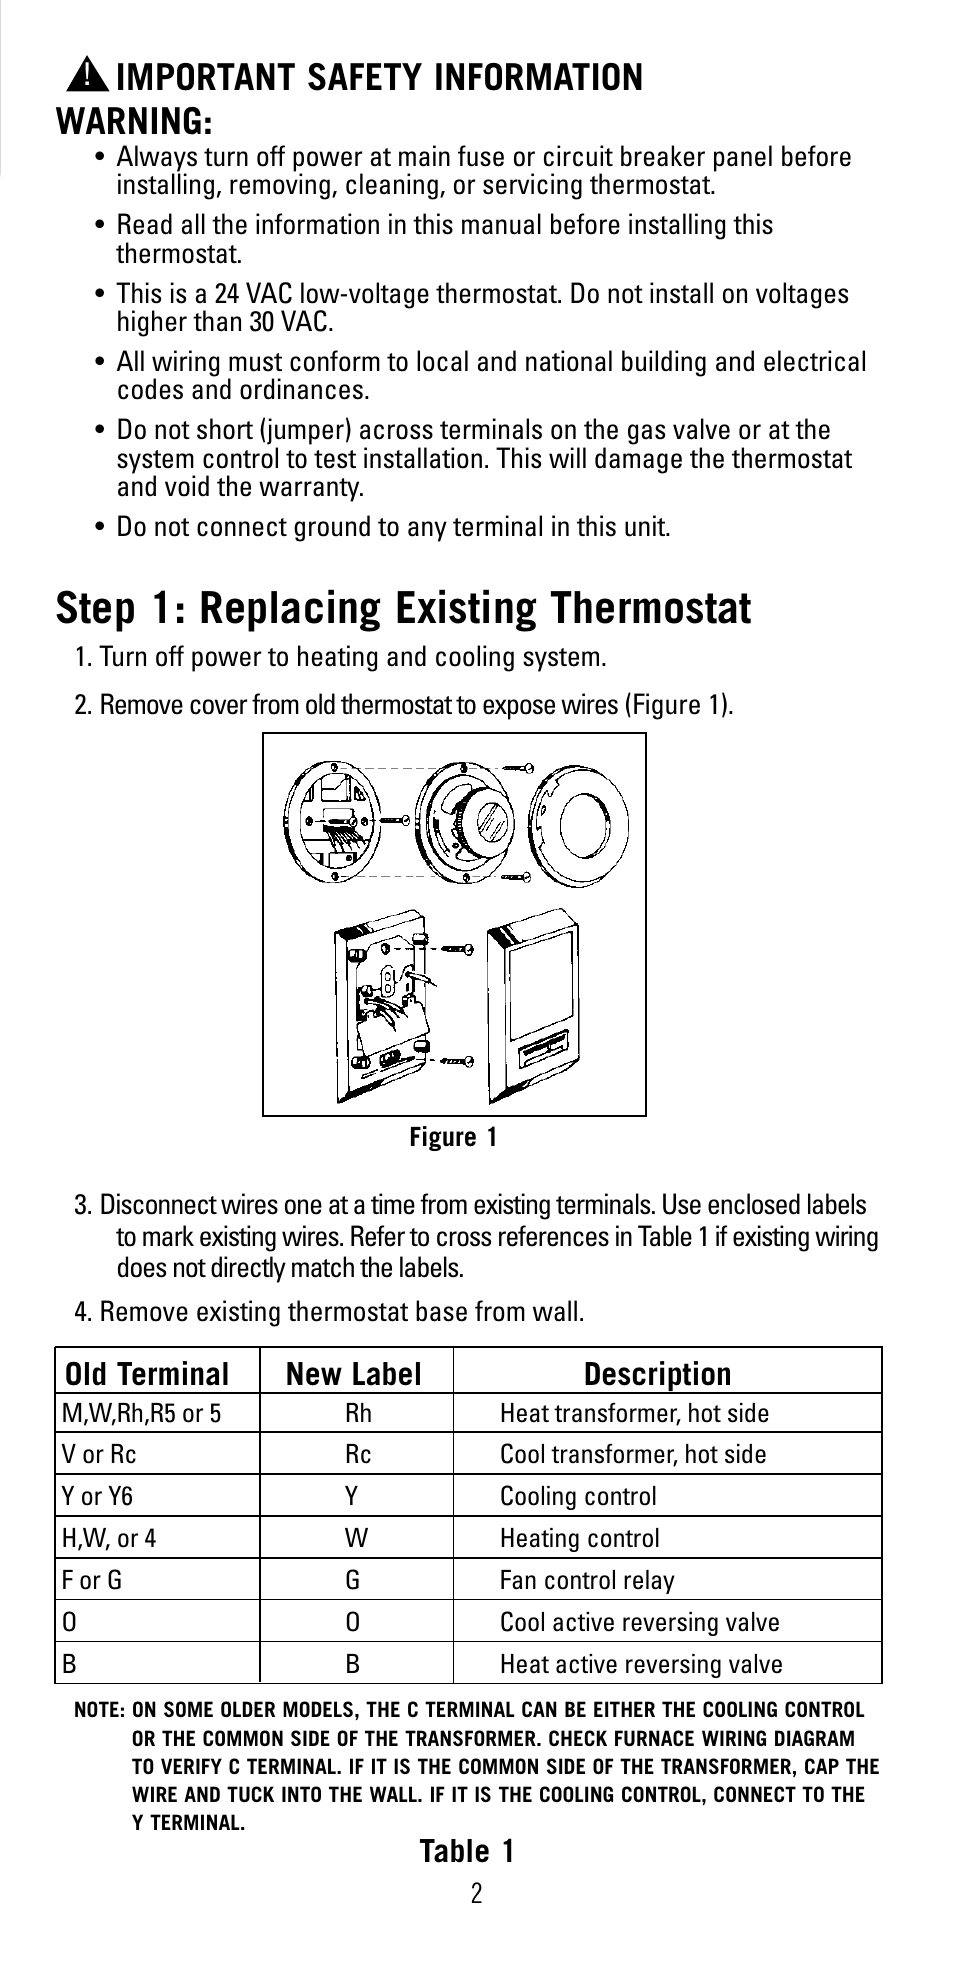 Step 1  Replacing Existing Thermostat  Important Safety Information Warning